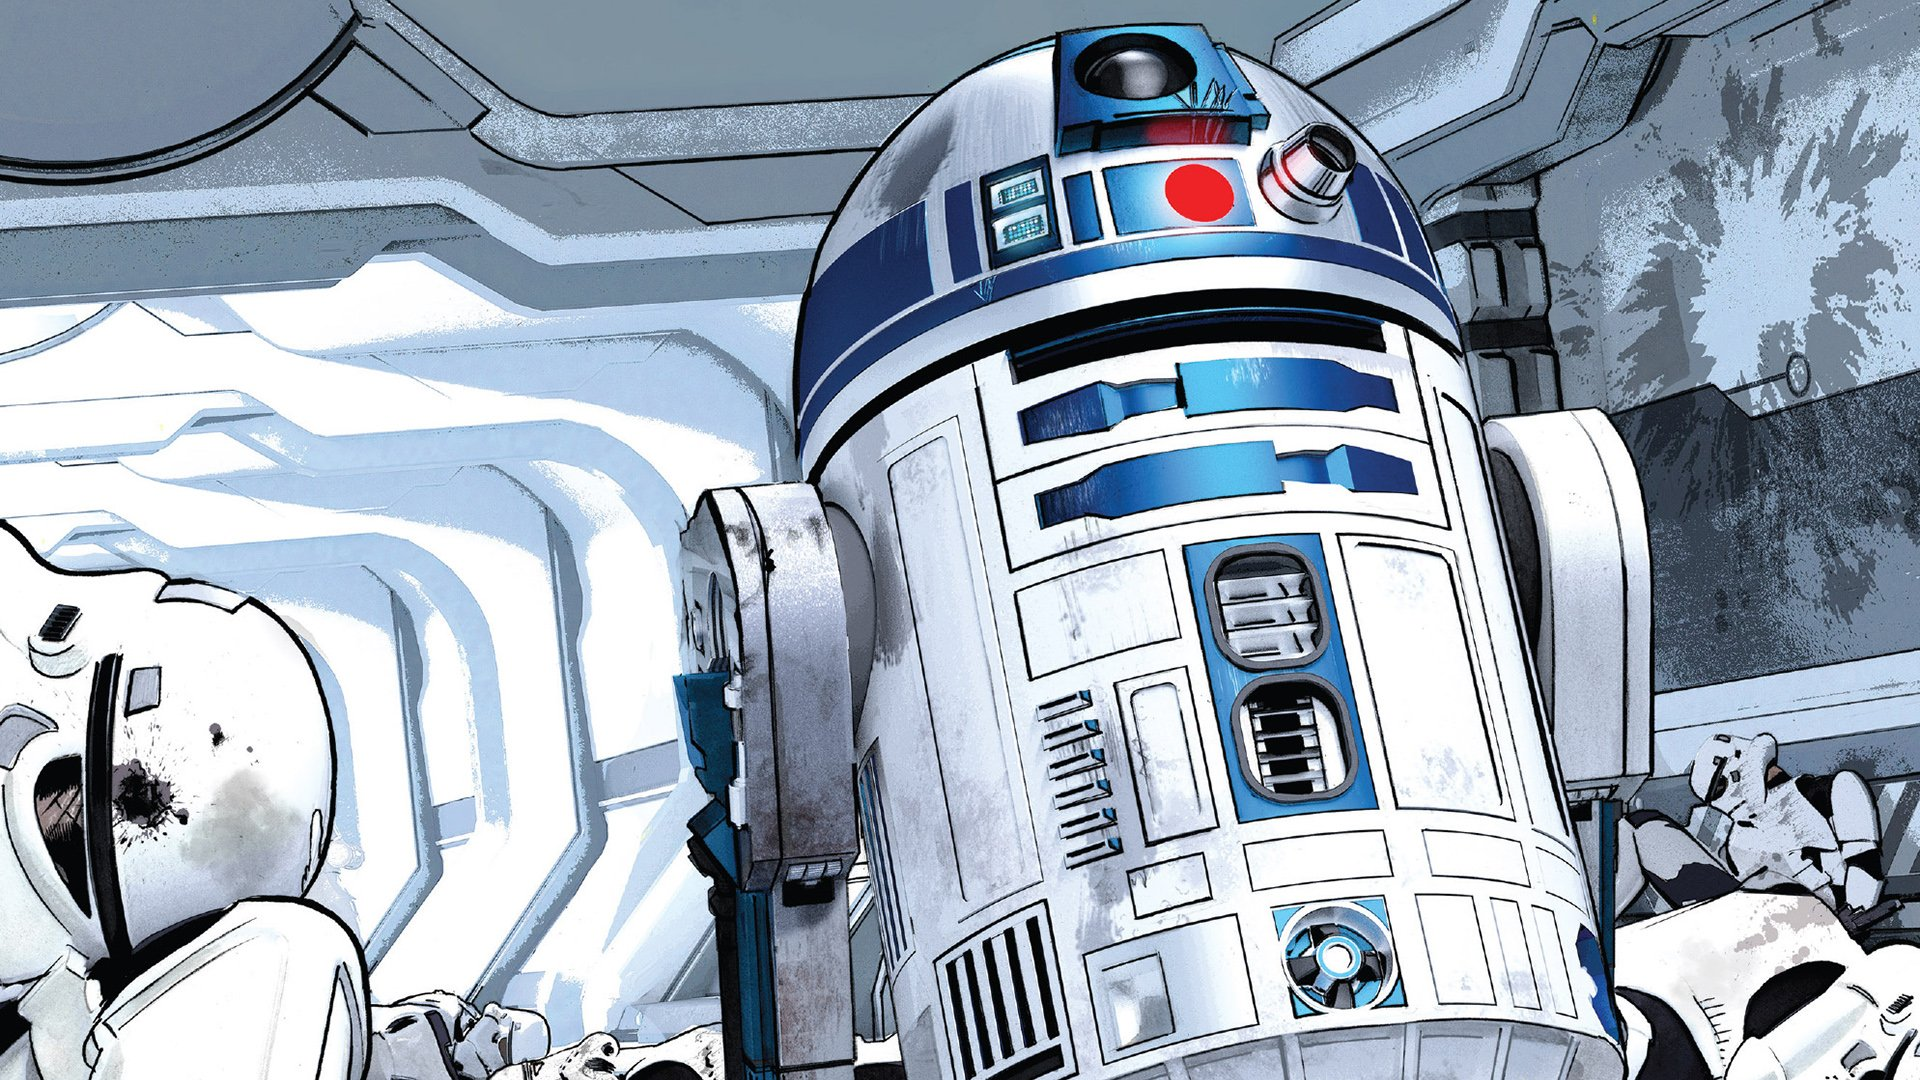 Comics - Star Wars  R2-D2 Wallpaper